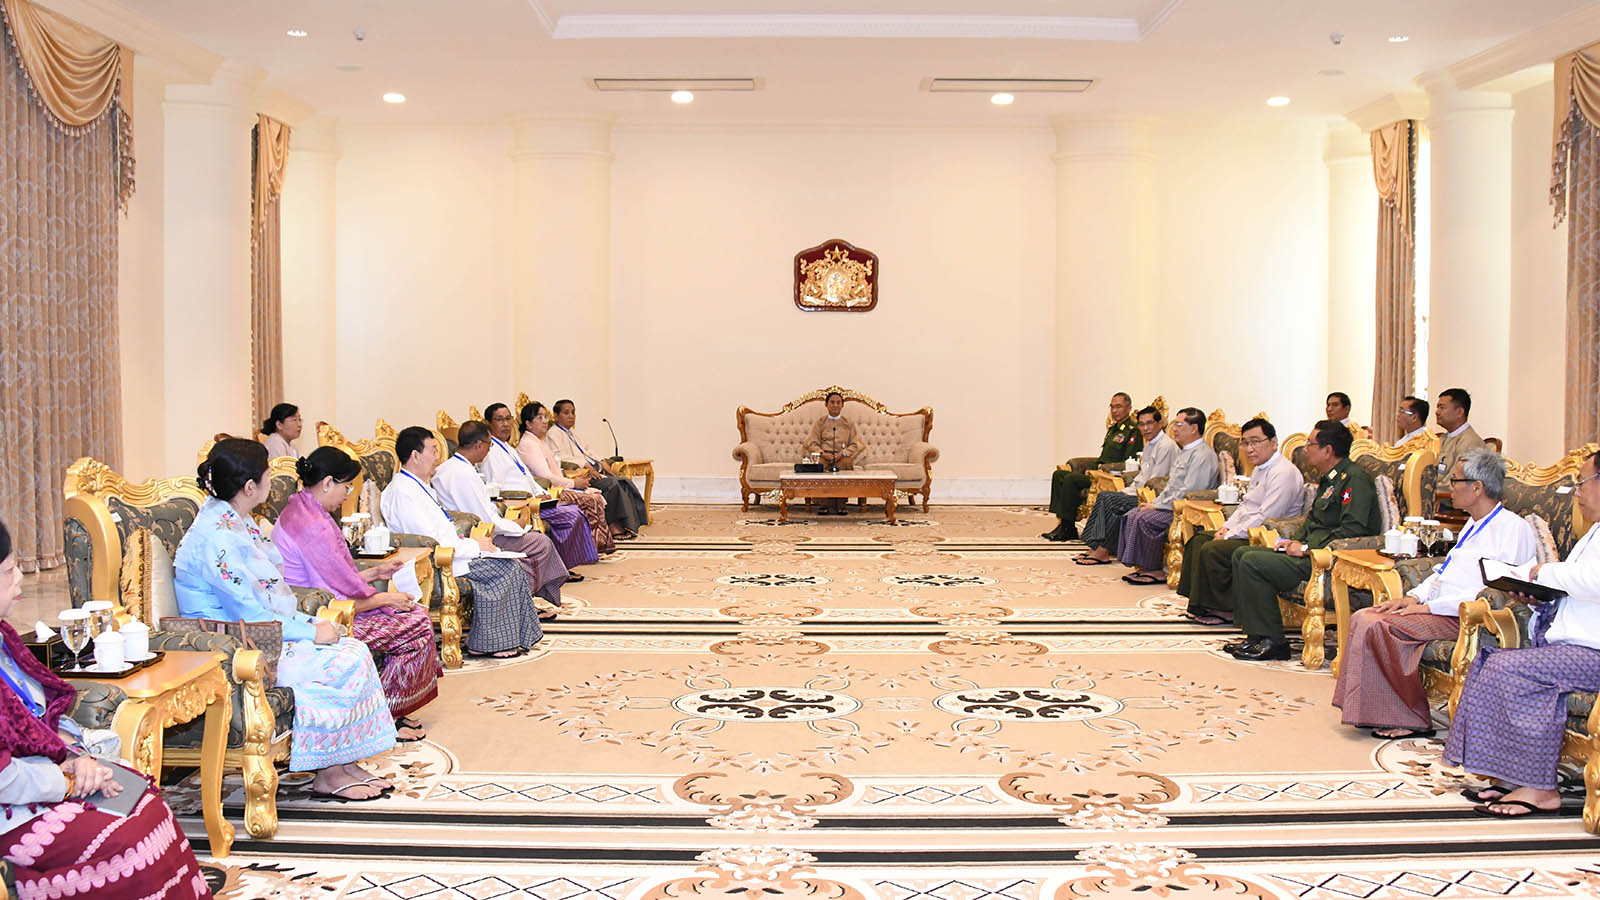 President U Win Myint meets the delegation led by Myanmar National Human Rights Commission Chairman U Hla Myint at the Presidential Palace in Nay Pyi Taw yesterday. Photo: MNA